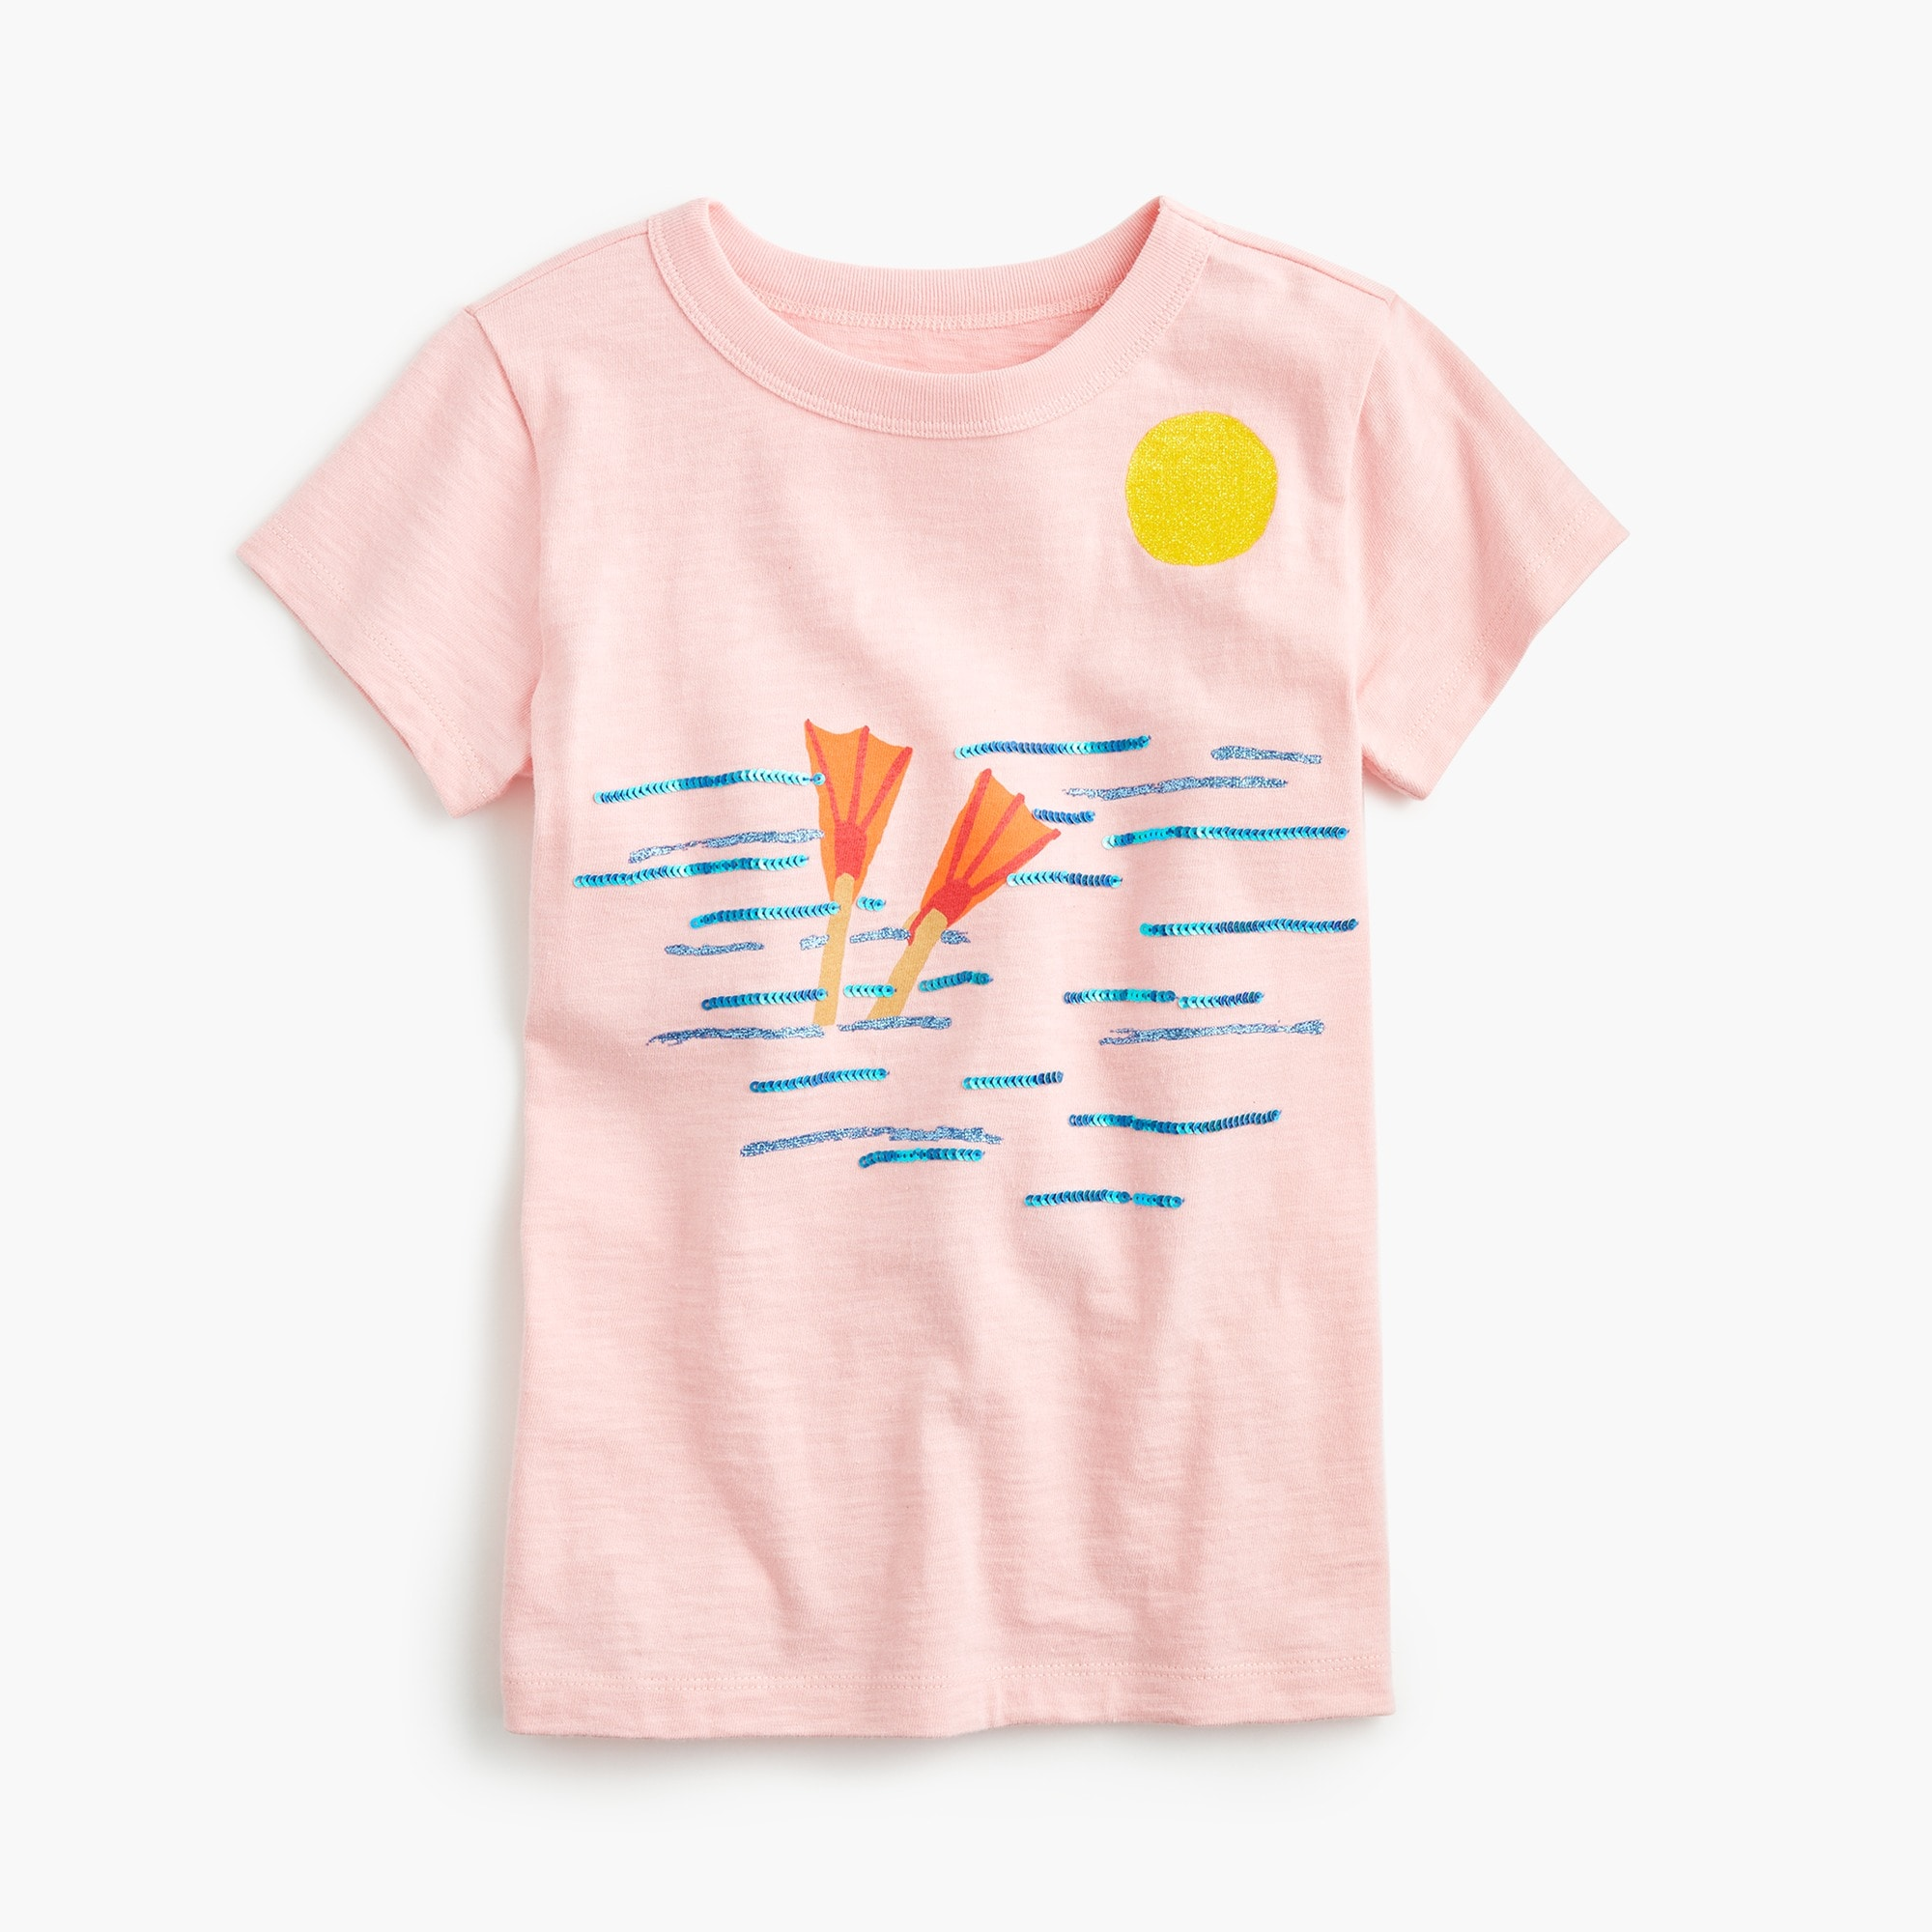 Girls' deep dive T-shirt